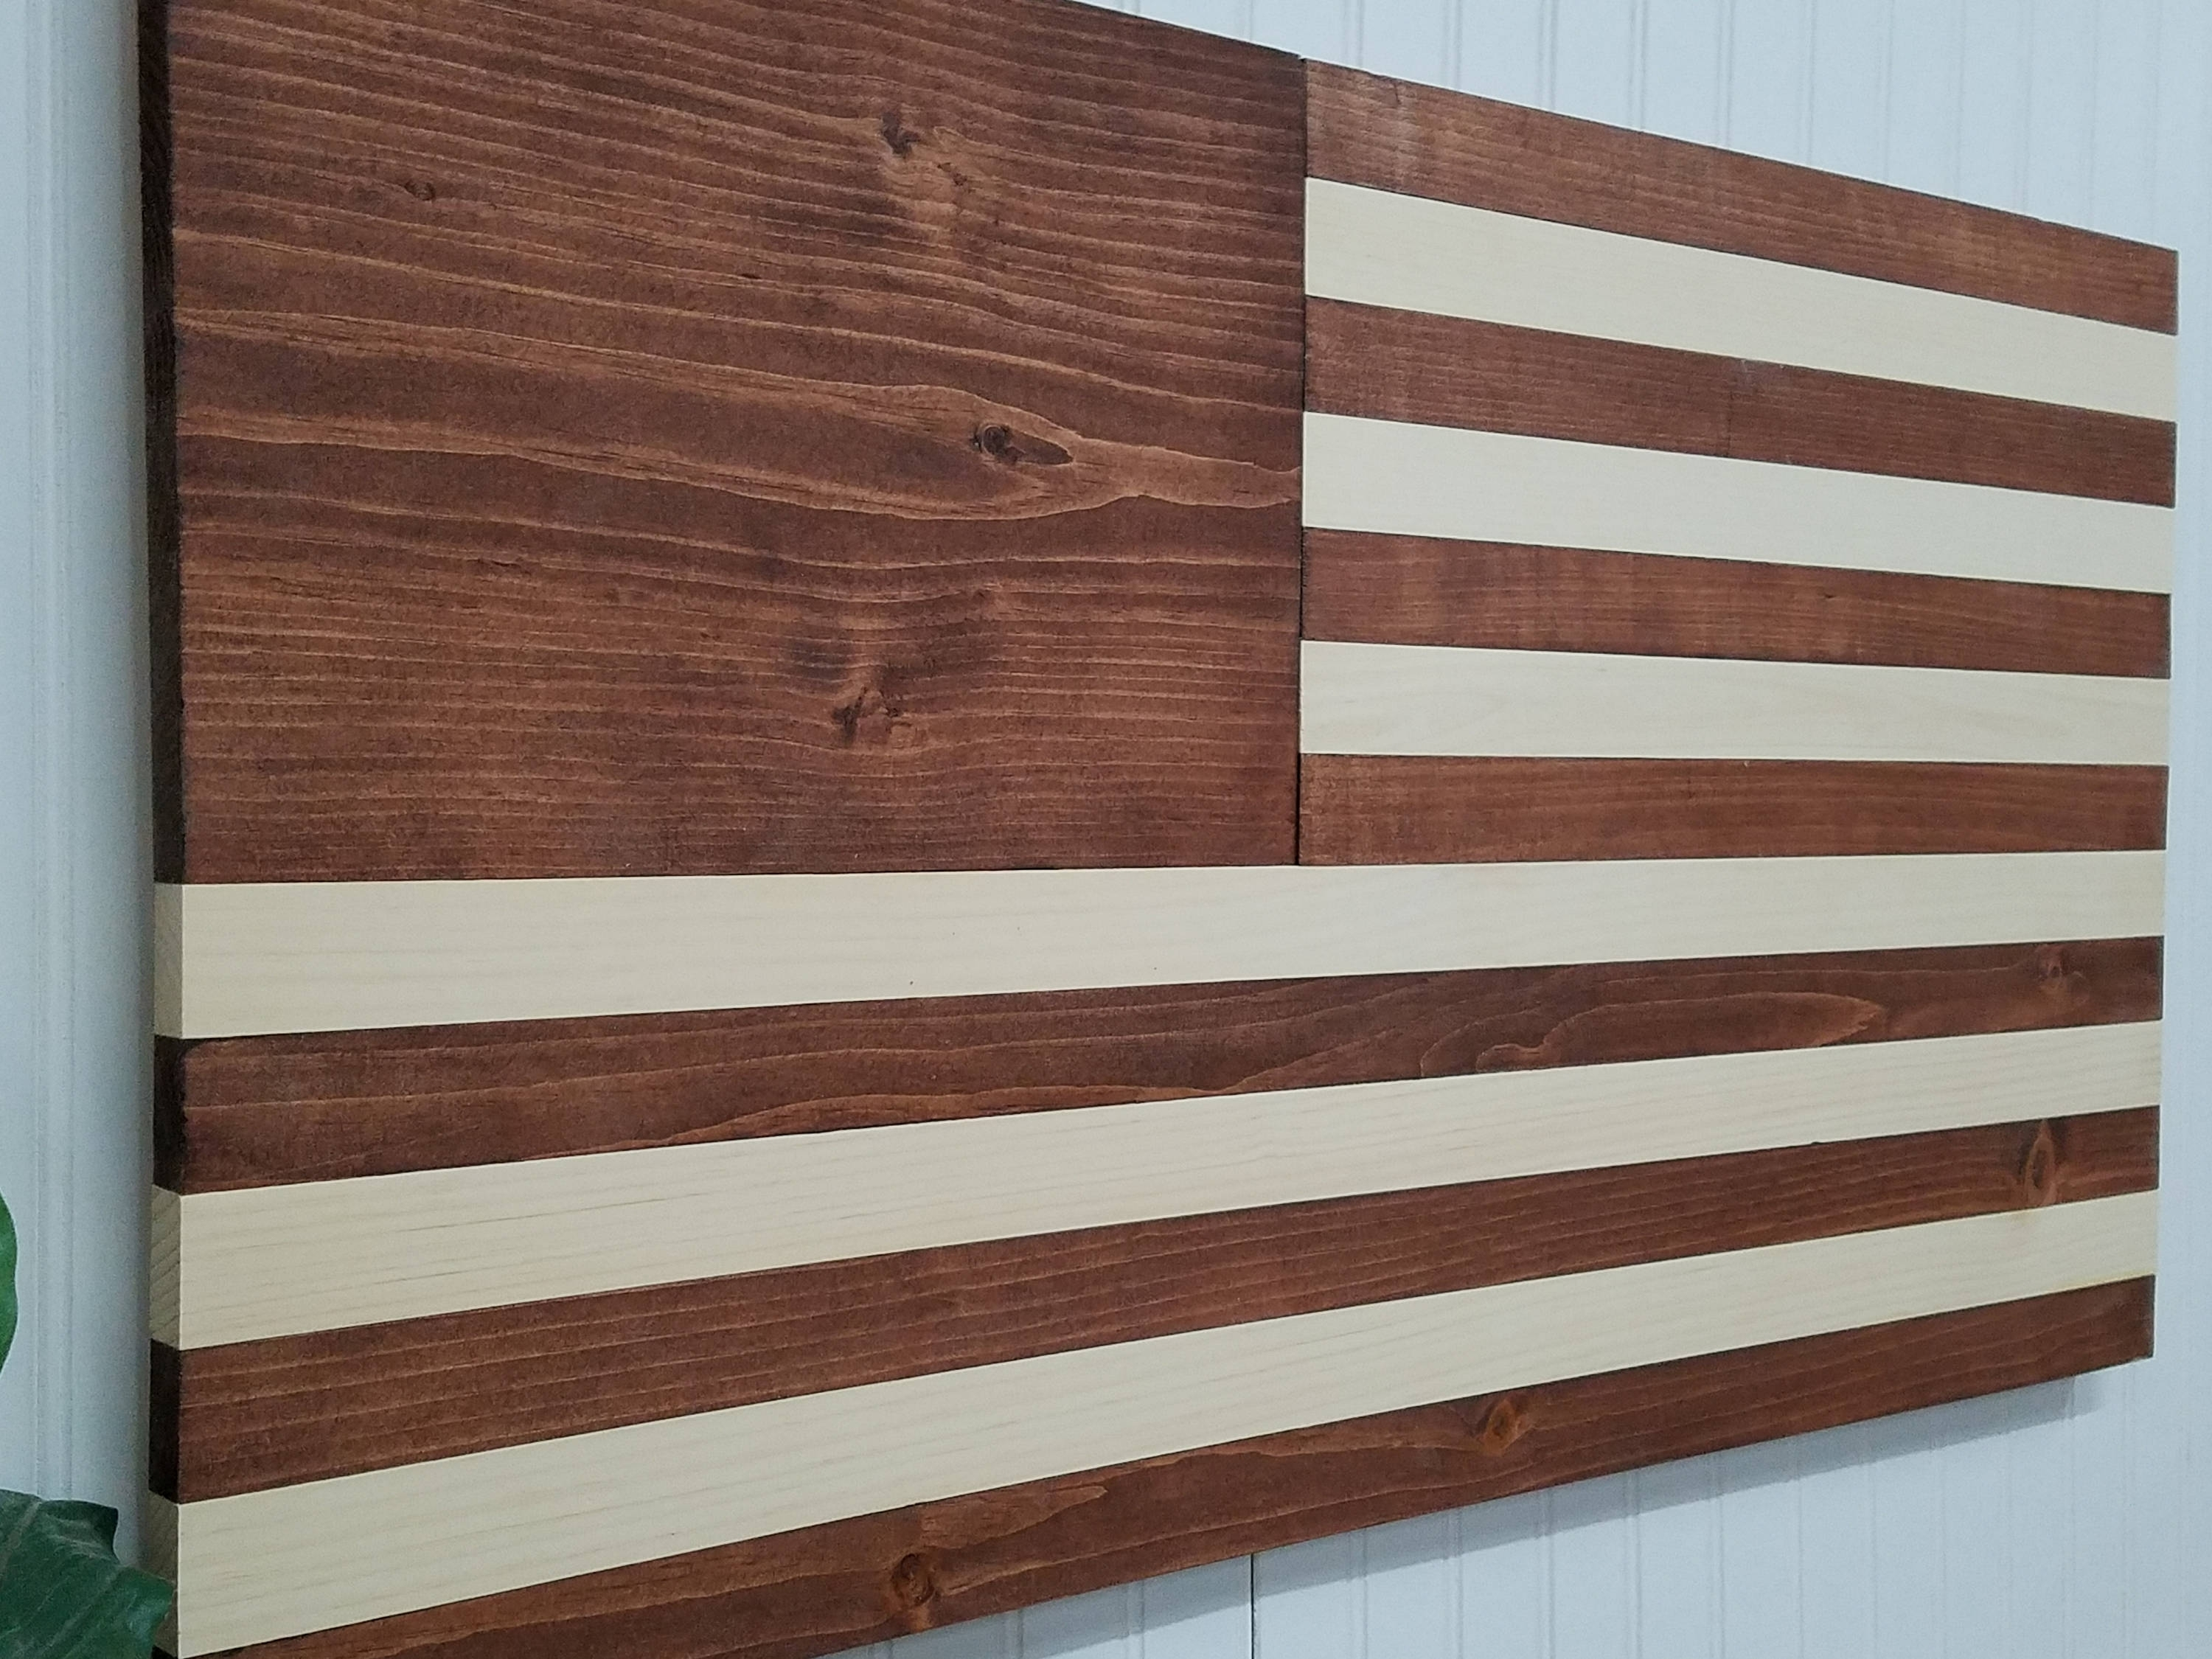 American Flag Theme Wooden Wall Mount Art Decor Usa Decoractive Regarding Newest Rustic American Flag Wall Art (View 1 of 20)